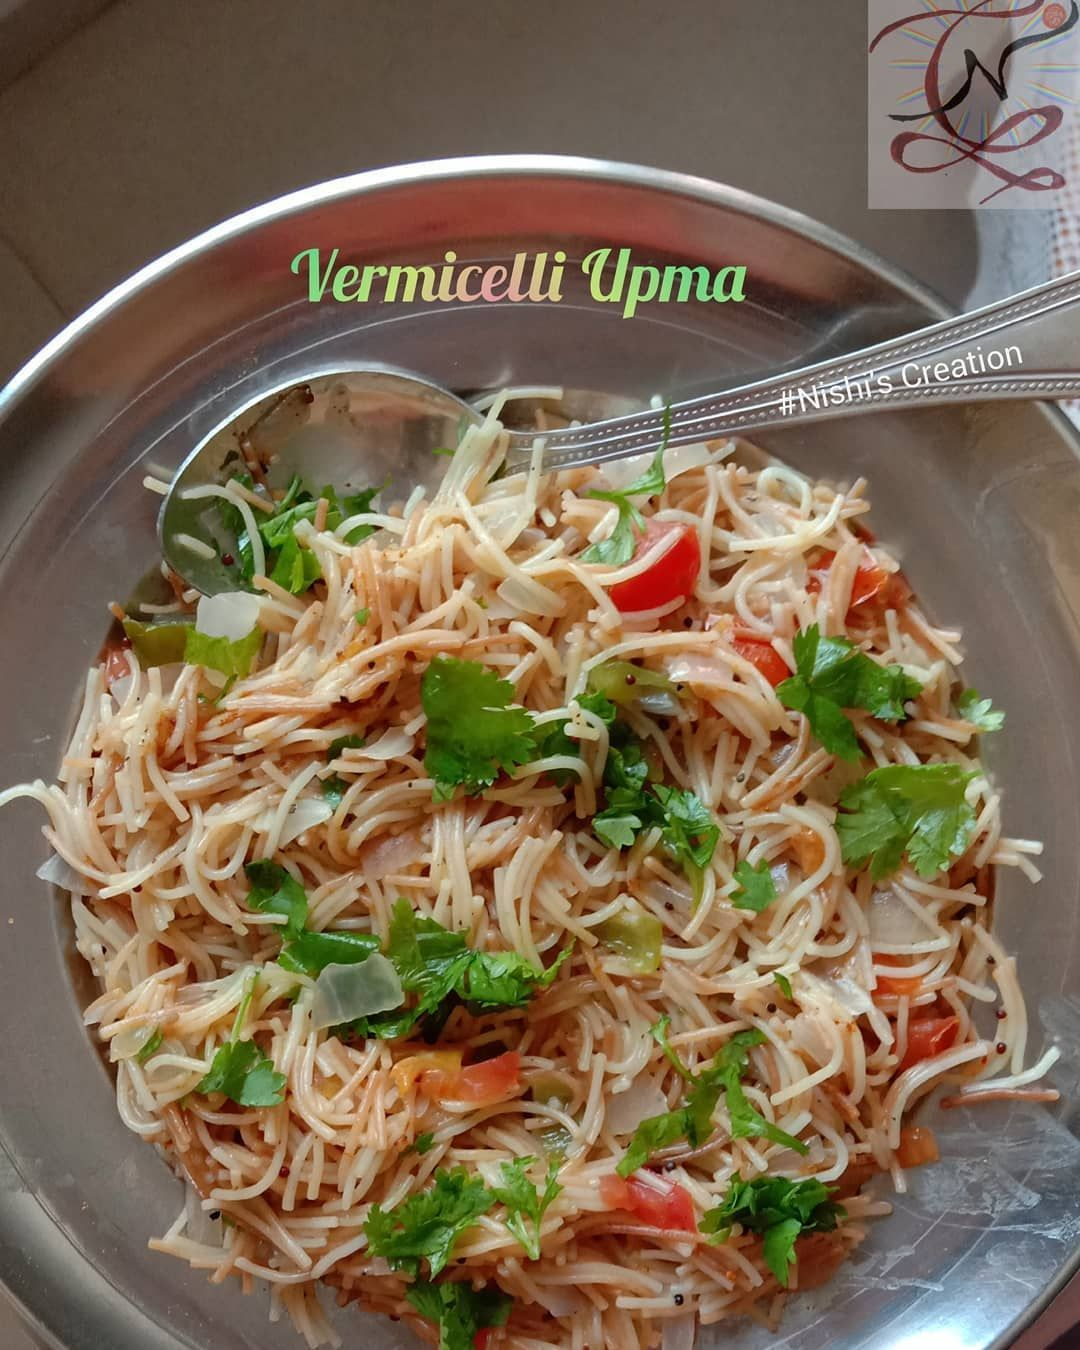 Morning everyone...For a healthy start of the day,with lots of veggies here comes a tasty treat... Vermicelli Upma 😋 . Hope you like the dish, DM for recipe . For more updates.... Follow 👇 @s_t_a_y_creative_24x7  @s_t_a_y_creative_24x7 . . #breakfast #breakfastideas #upma #vermicelli #healthyfood #healthylifestyle #healthyrecipes #creative #createveryday #morningvibes #morningbreakfast #startthedayright #mealprep #food #foodporn #foodphotography #foodstagram #foodie #foodblogger #foodiesofinst